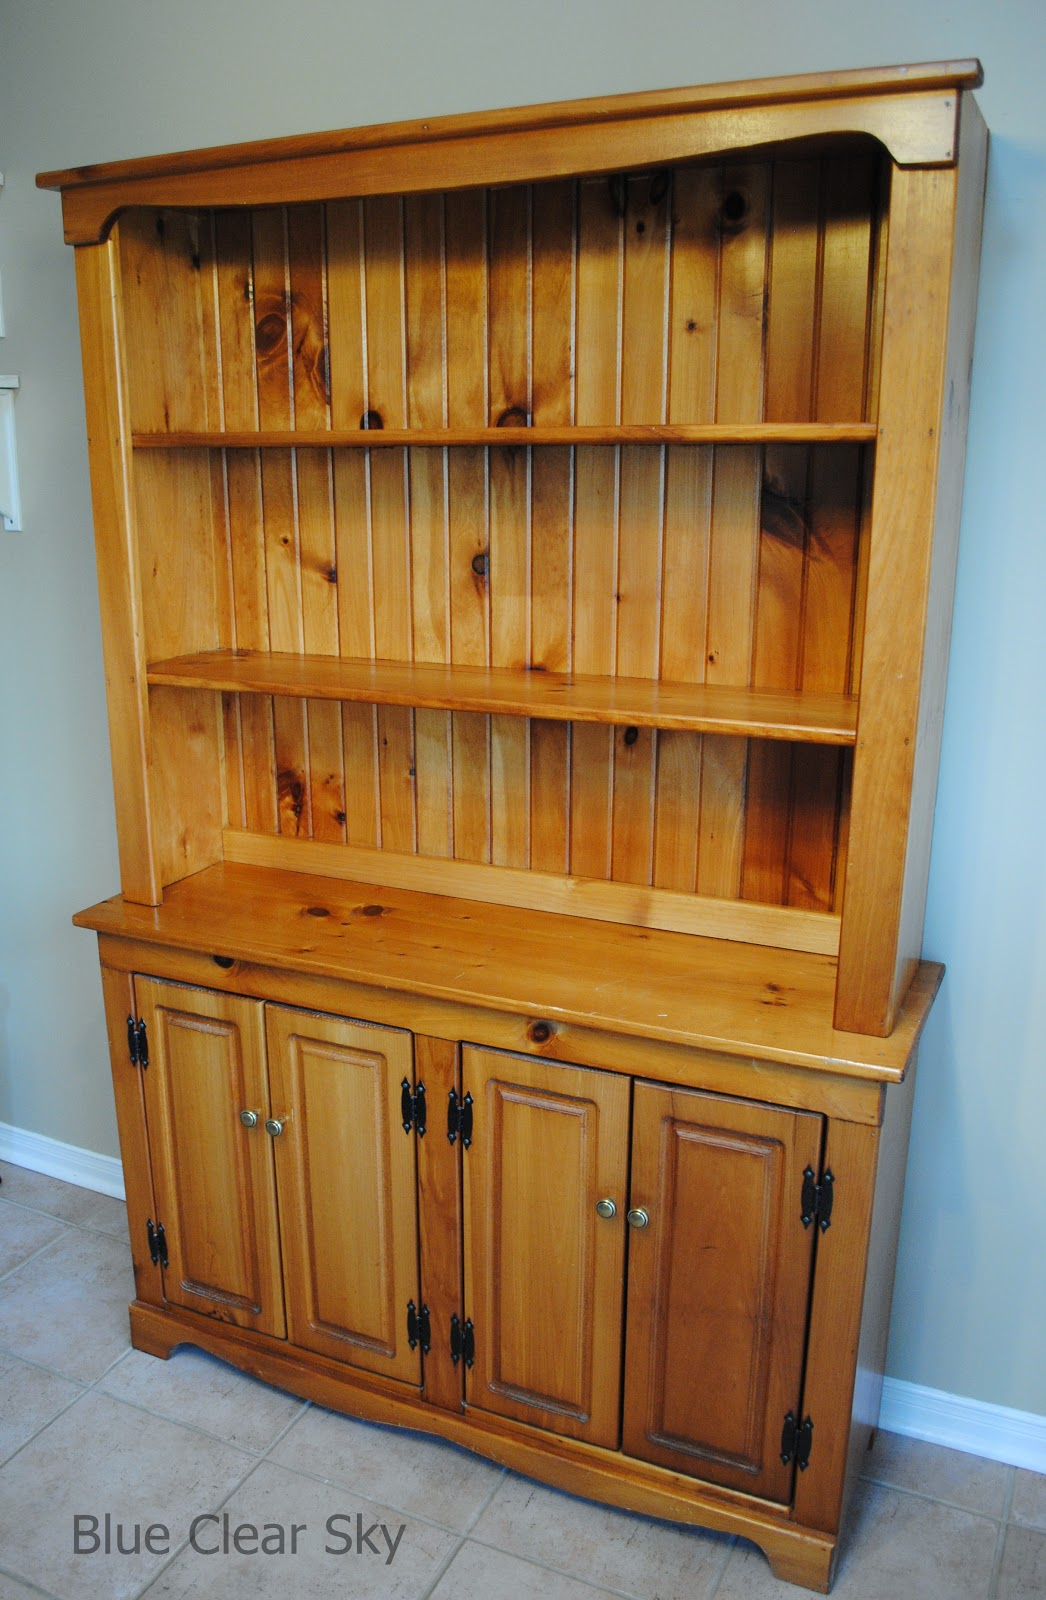 Rustic Maple: A Pine Buffet and Hutch and Vintage Ironstone